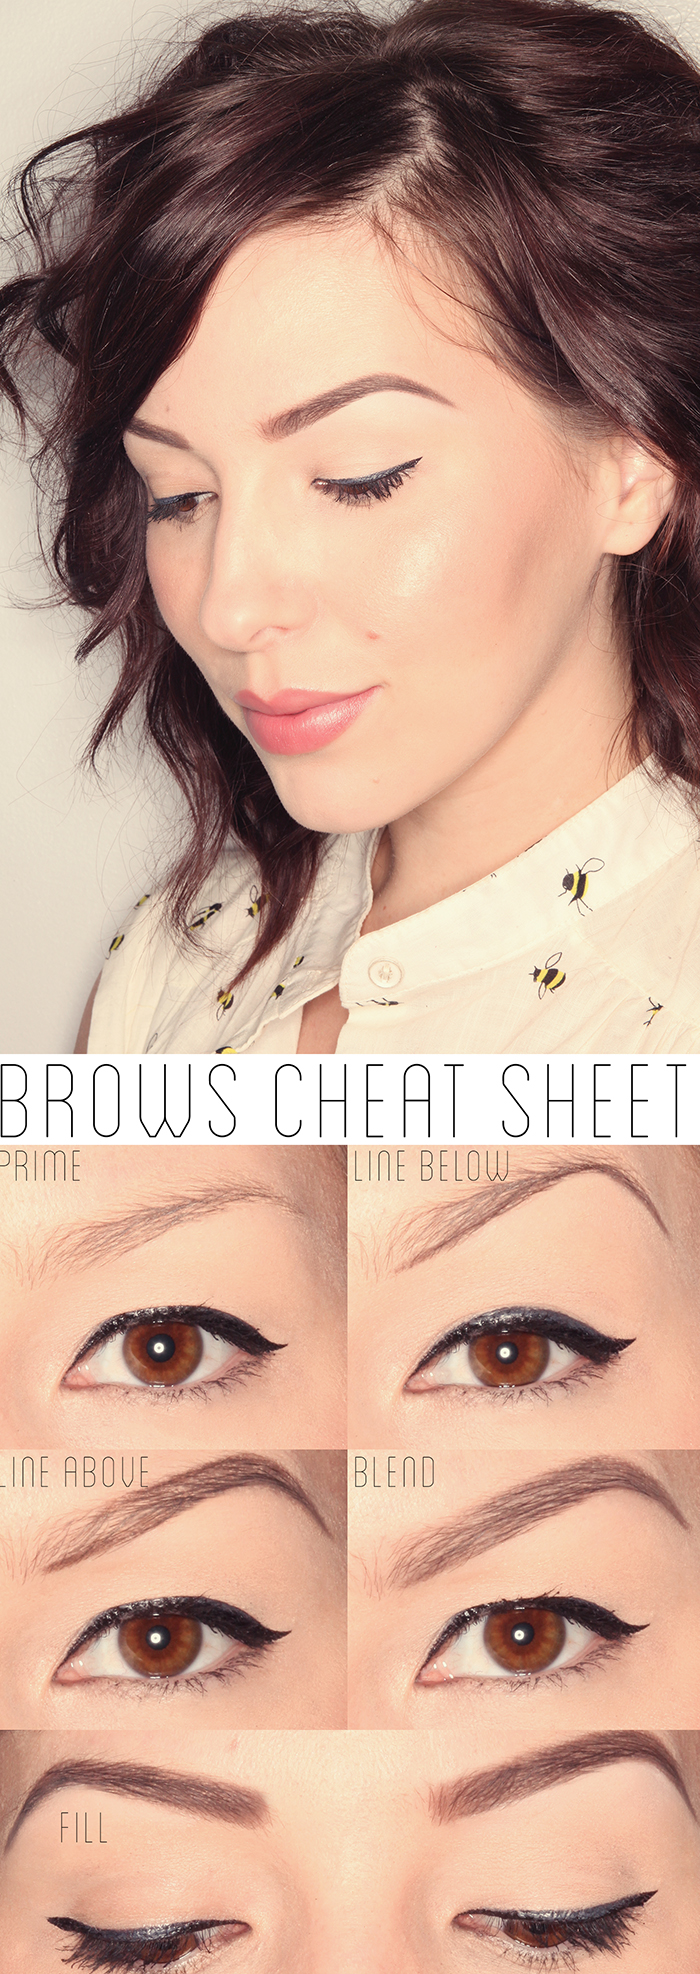 Keiko Lynn: Makeup Monday: How To Get The Perfect Brows